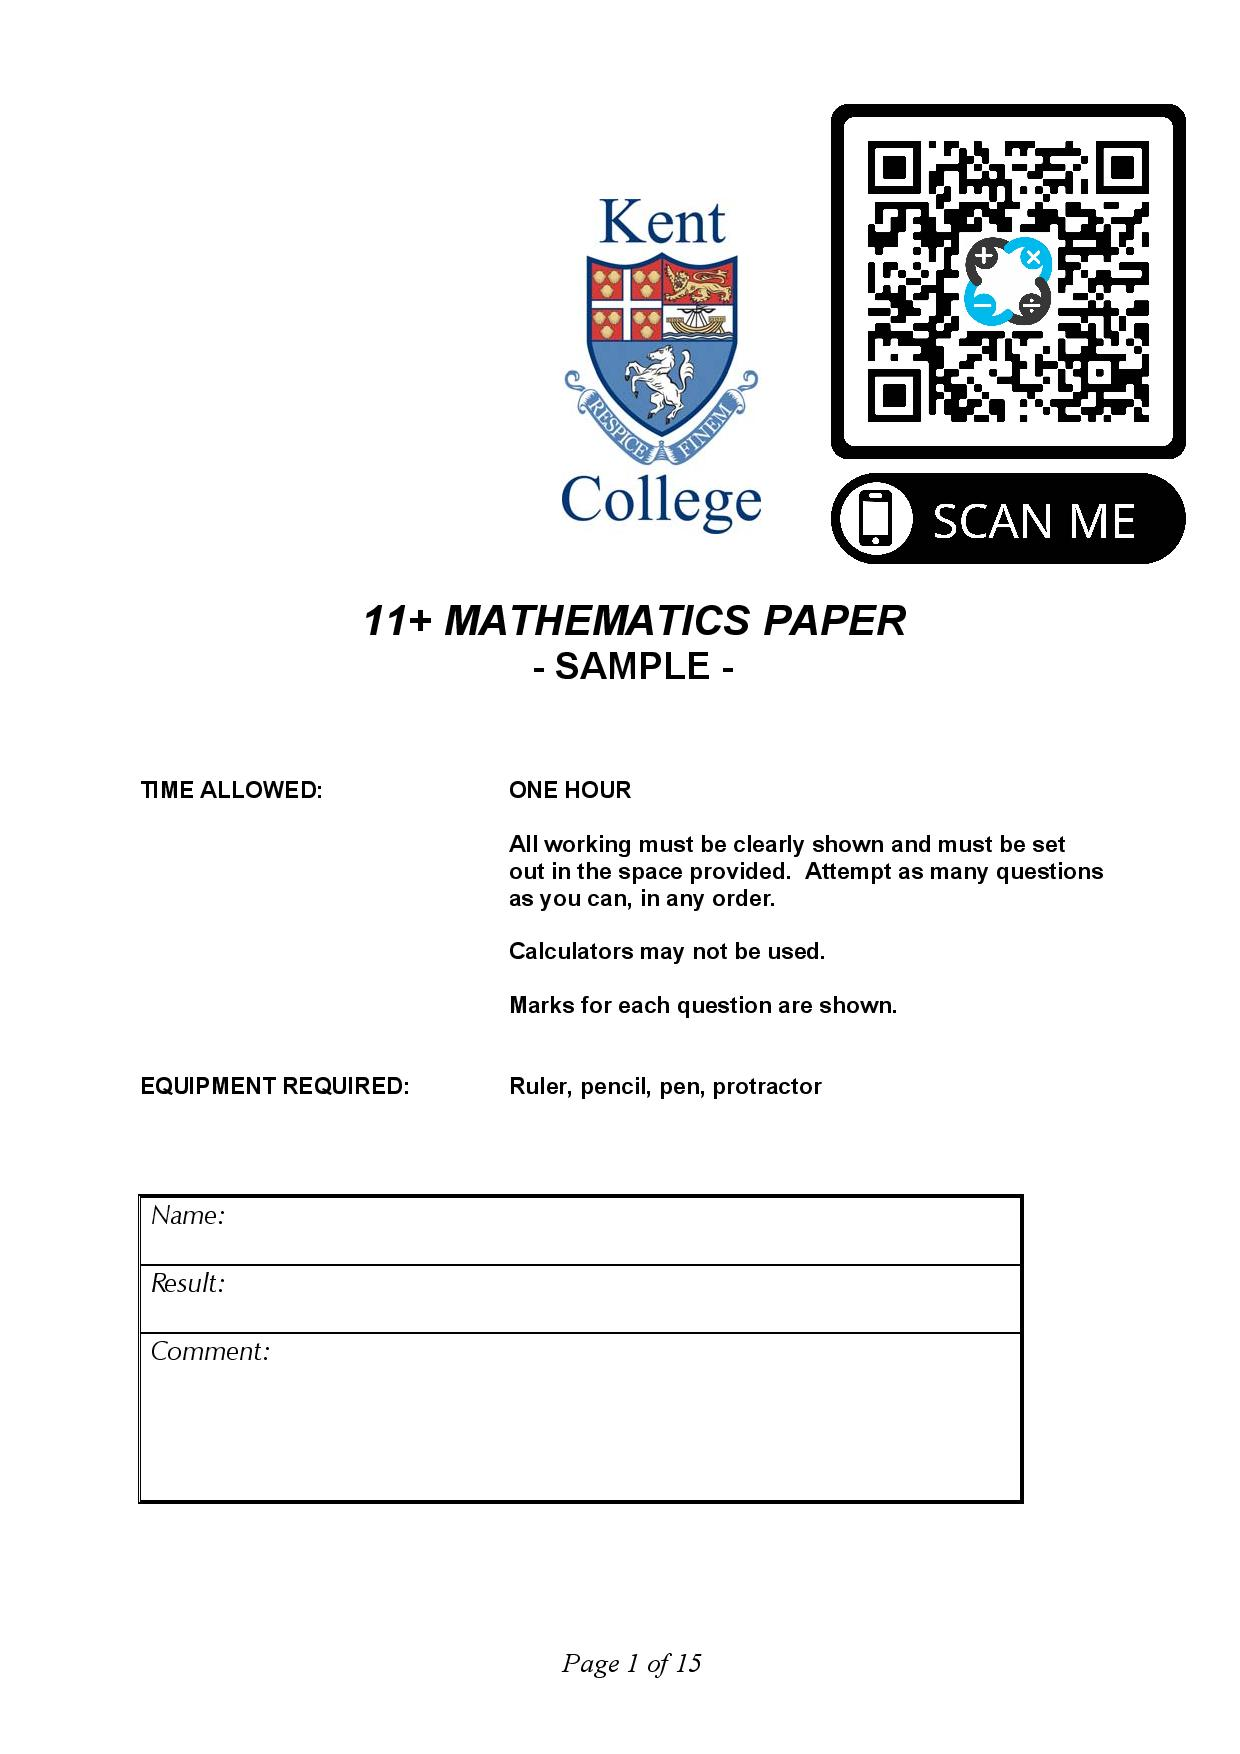 Kent College 11 MATHEMATICS PAPER SAMPLE Questions Paper page 001